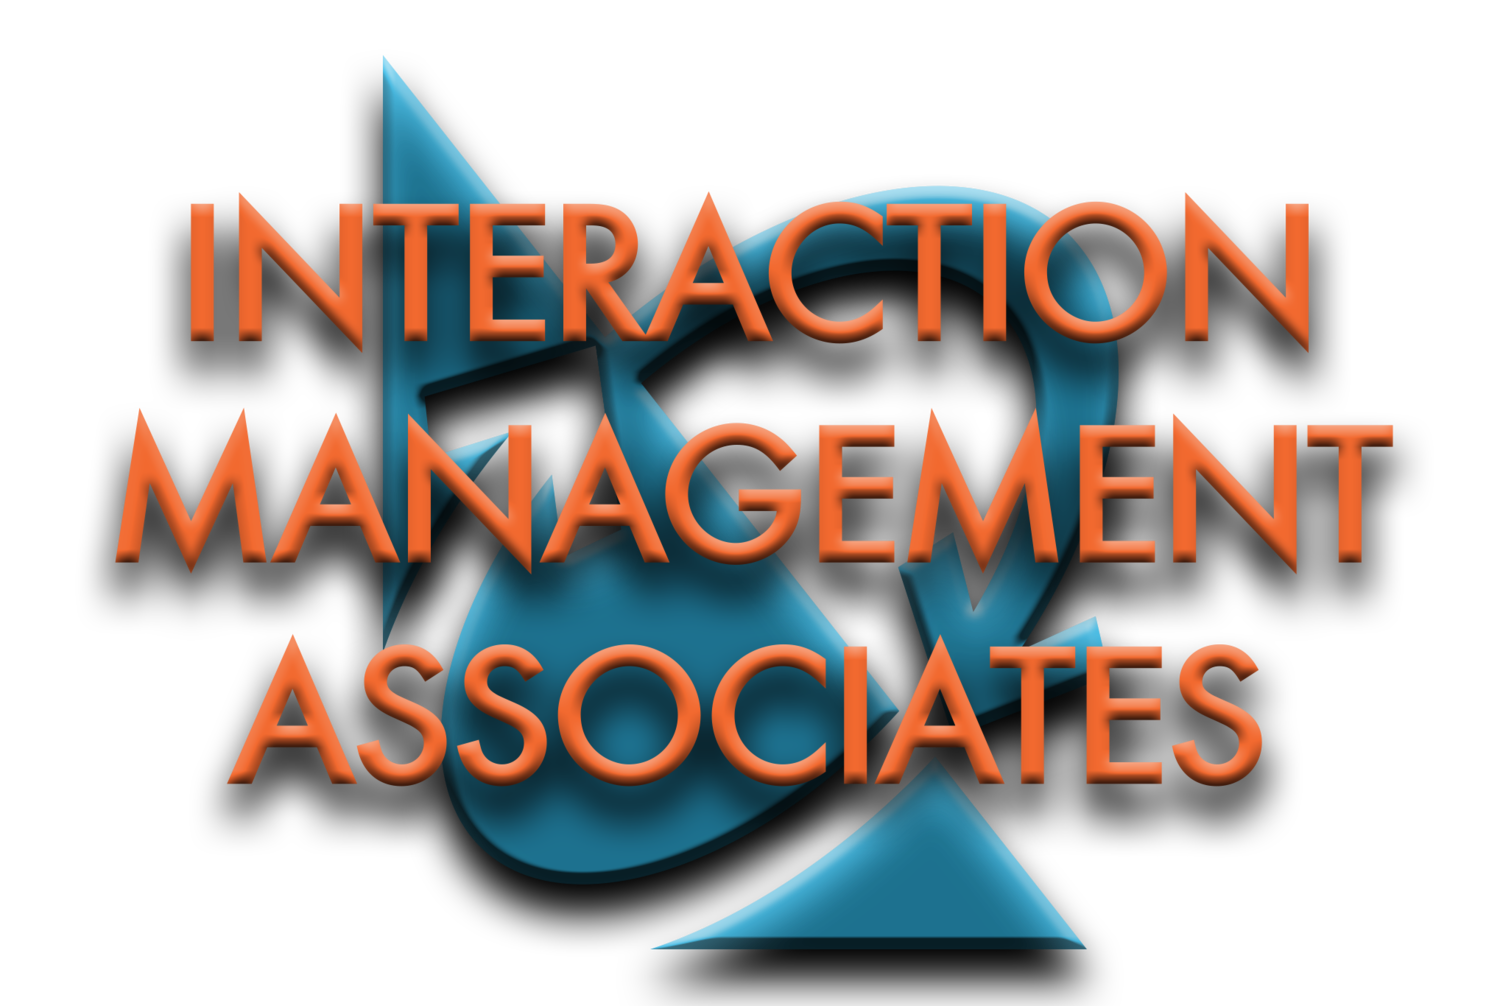 Interaction Management Associates